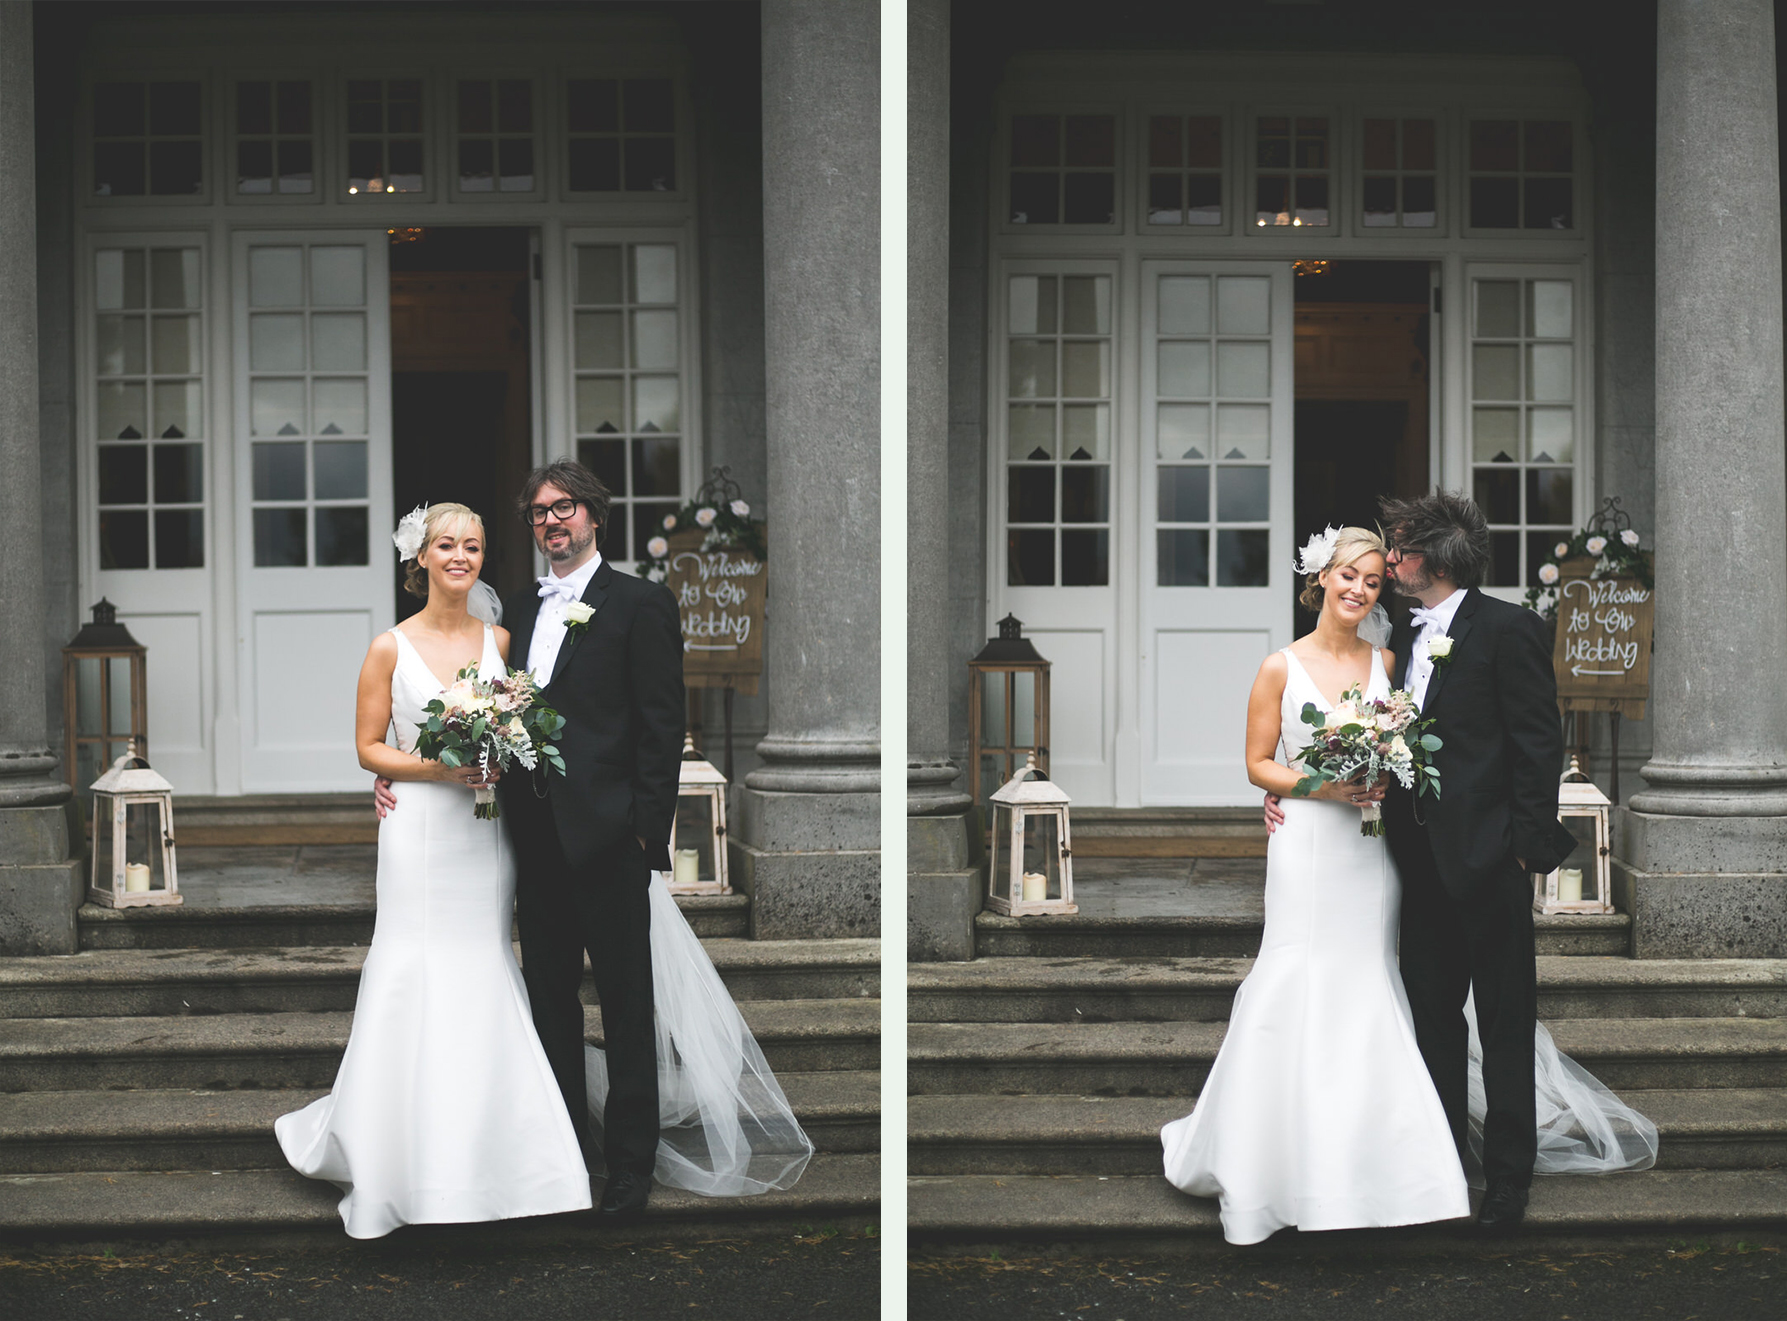 Palmerstown Estate and House wedding venue